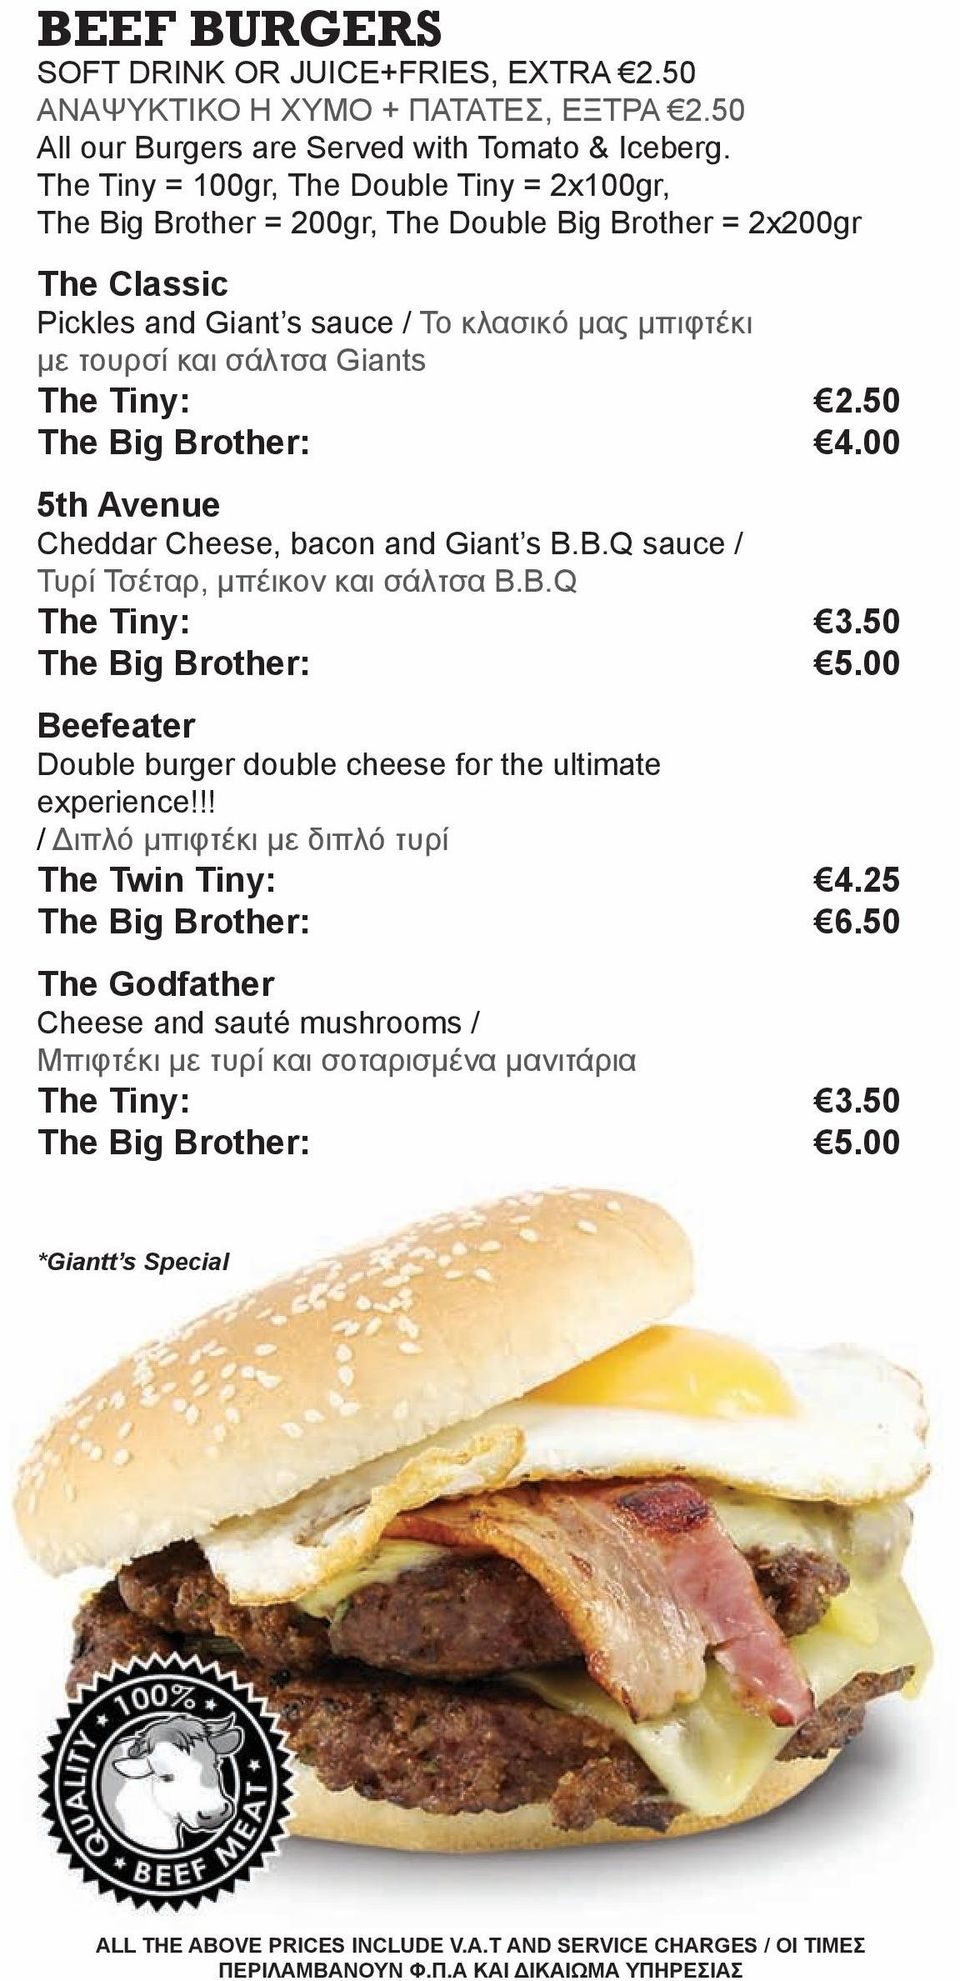 The Tiny: 2.50 The Big Brother: 4.00 5th Avenue Cheddar Cheese, bacon and Giant s B.B.Q sauce / Τυρί Τσέταρ, μπέικον και σάλτσα B.B.Q The Tiny: 3.50 The Big Brother: 5.